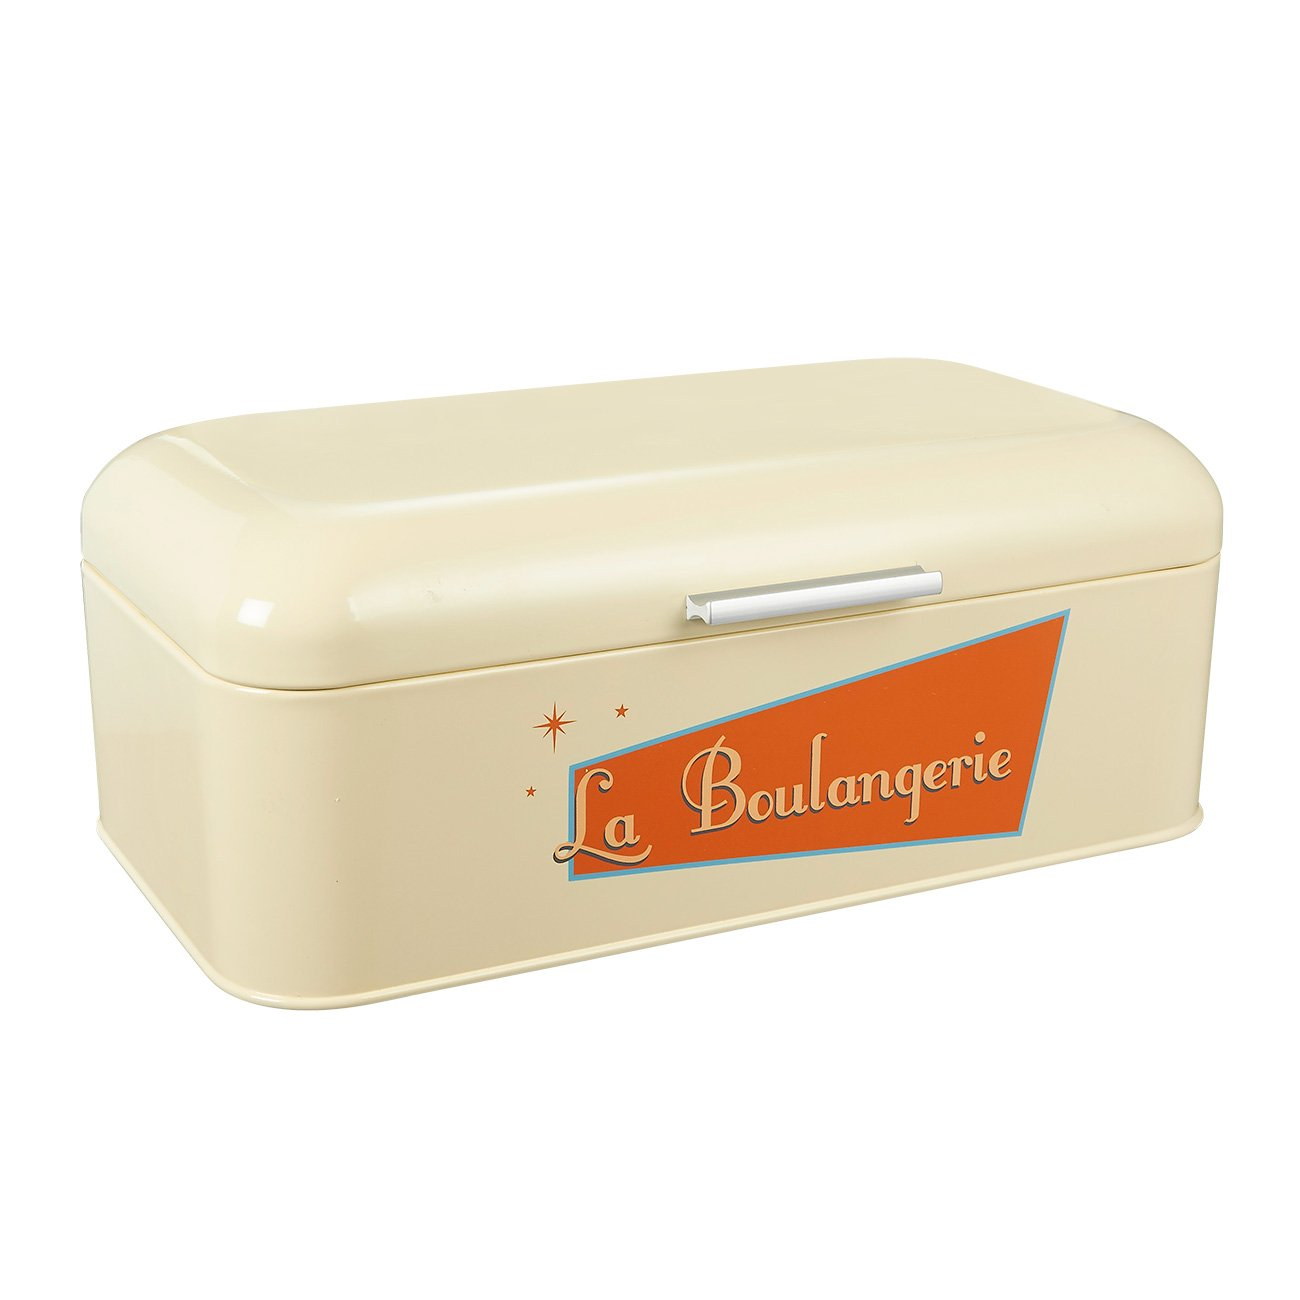 Juvale Bread in a Box for Kitchen - Stainless Steel Bread Bin Bread Box Vintage Retro Storage Container For Loaves, Pastries, and More, Cream, 16.75 x 9 x 6.5 Inches by Juvale